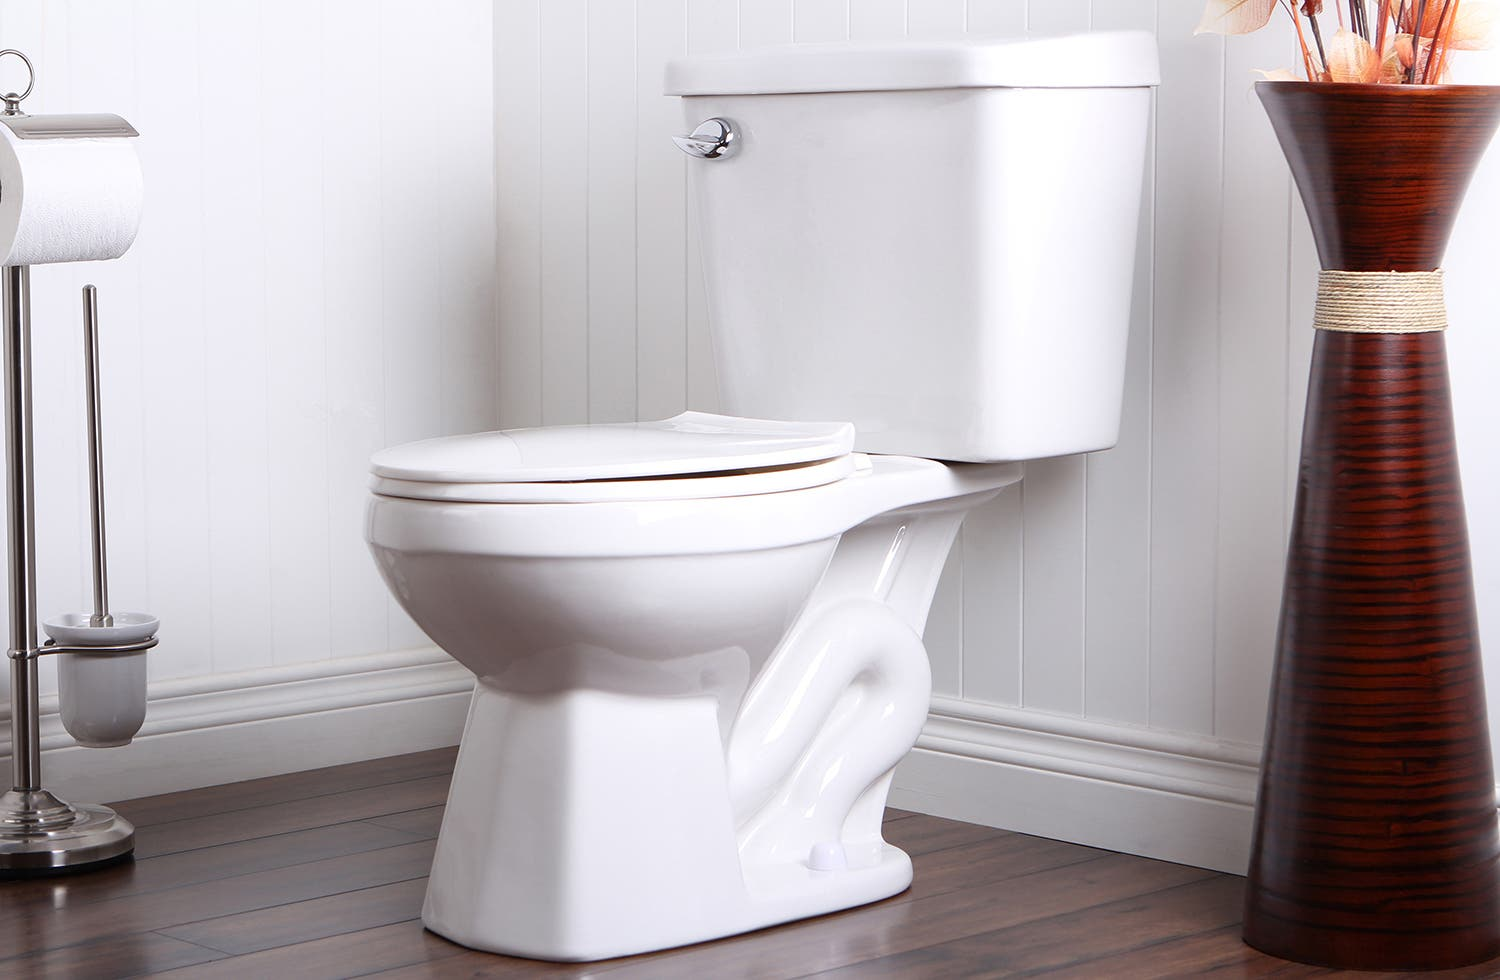 Bathroom design consideration: Where should you put the toilet ...